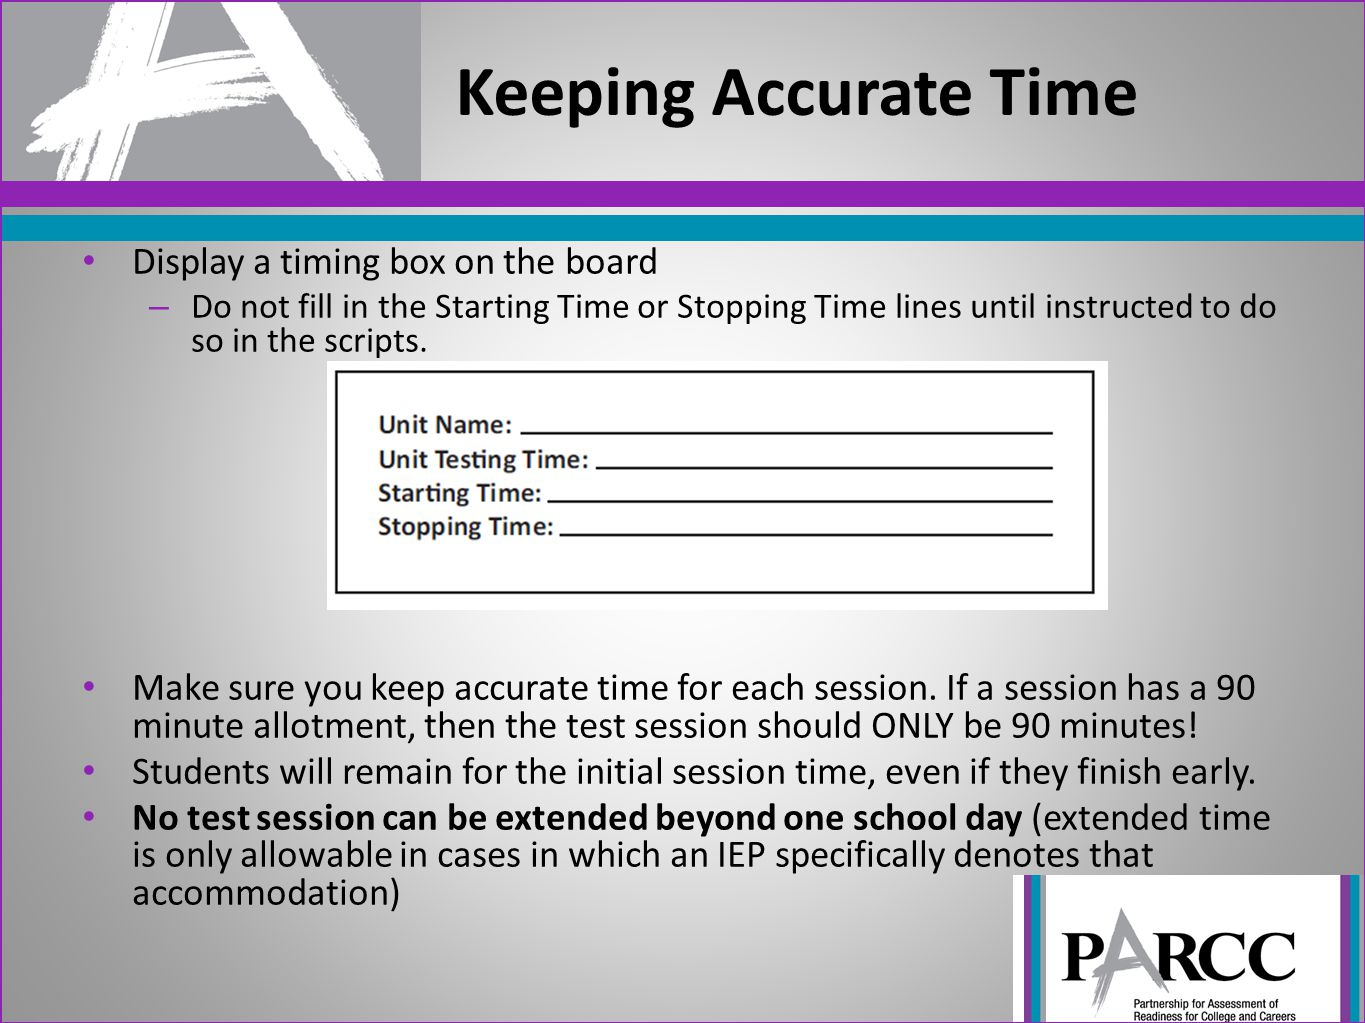 Display a timing box on the board – Do not fill in the Starting Time or Stopping Time lines until instructed to do so in the scripts.